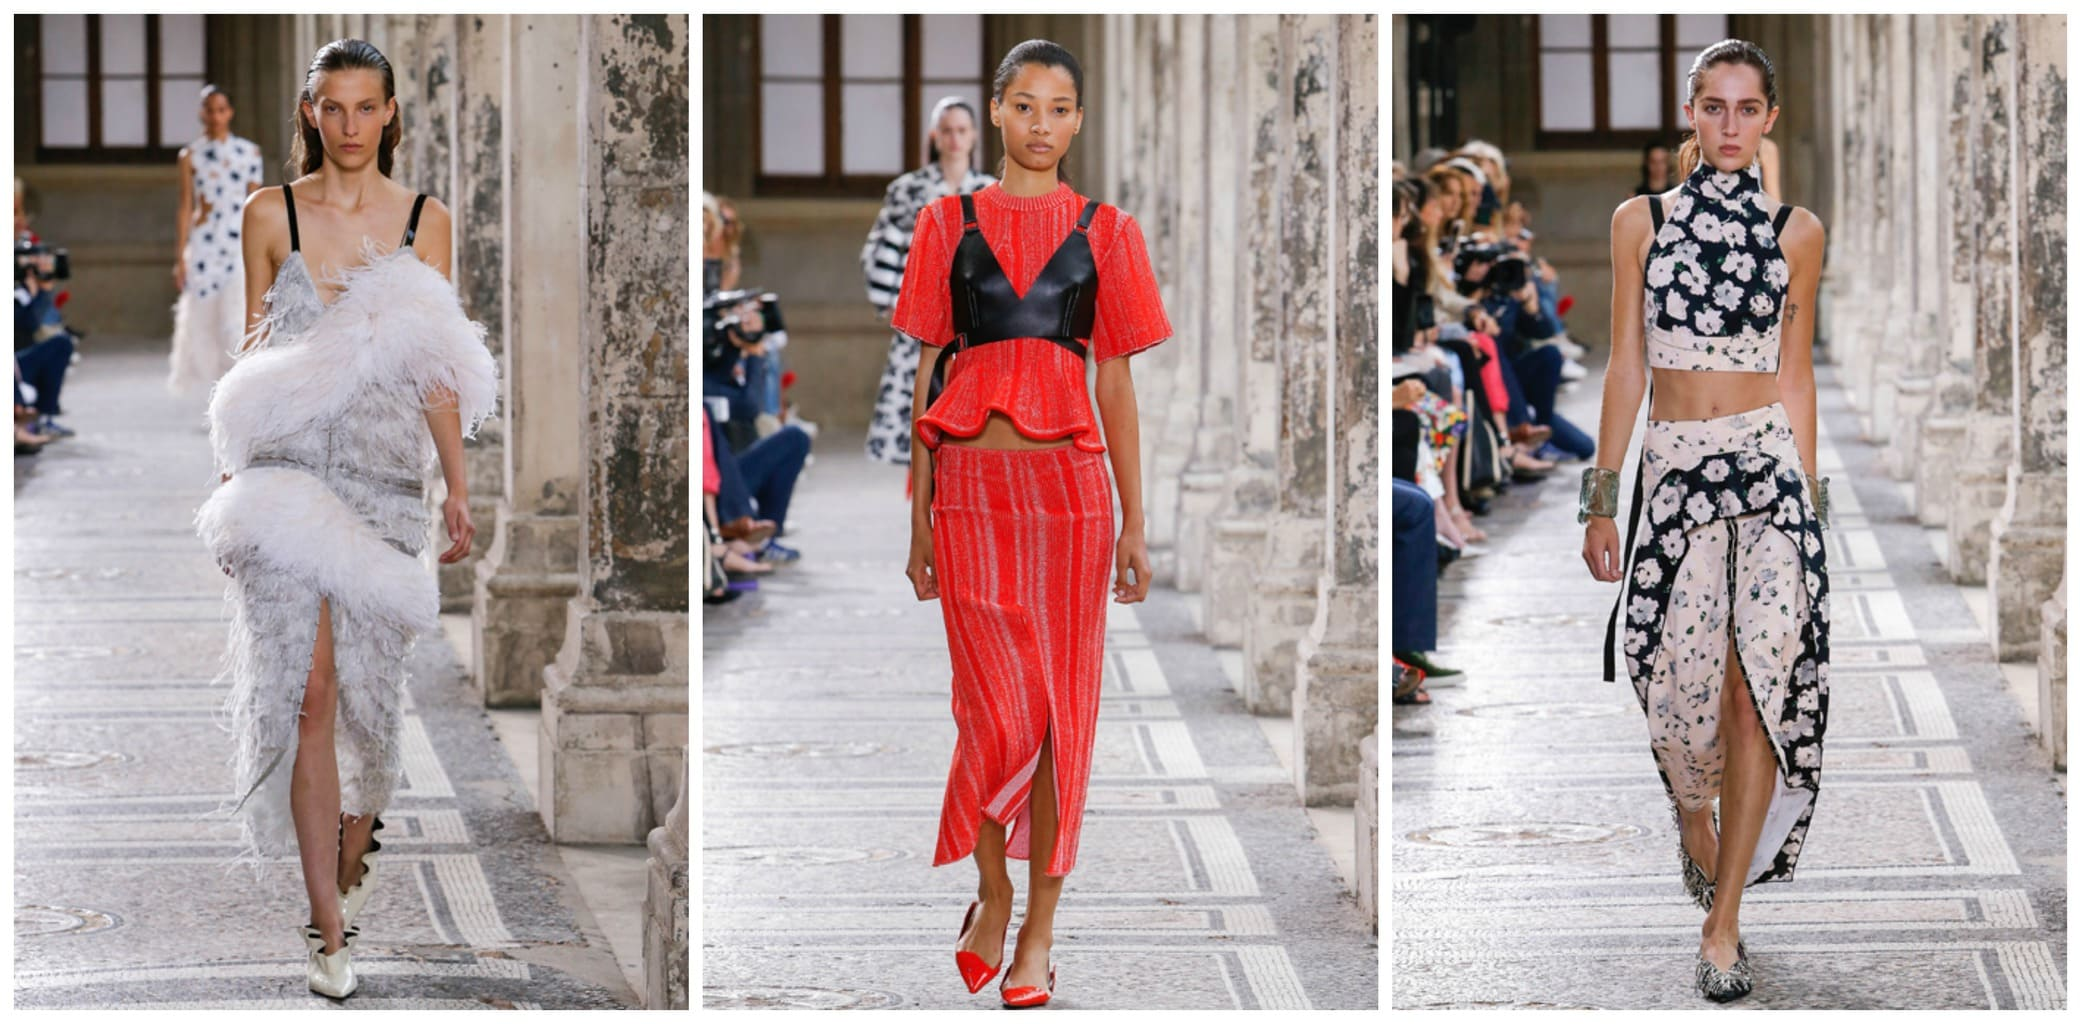 Proenza Schouler Spring 2018 runway looks -- woman wearing a fur embellished gray dress, model wearing a red crepe tee and split-front midi skirt with red flats, model wearing a daisy print crop top and front-slit wrap skirt